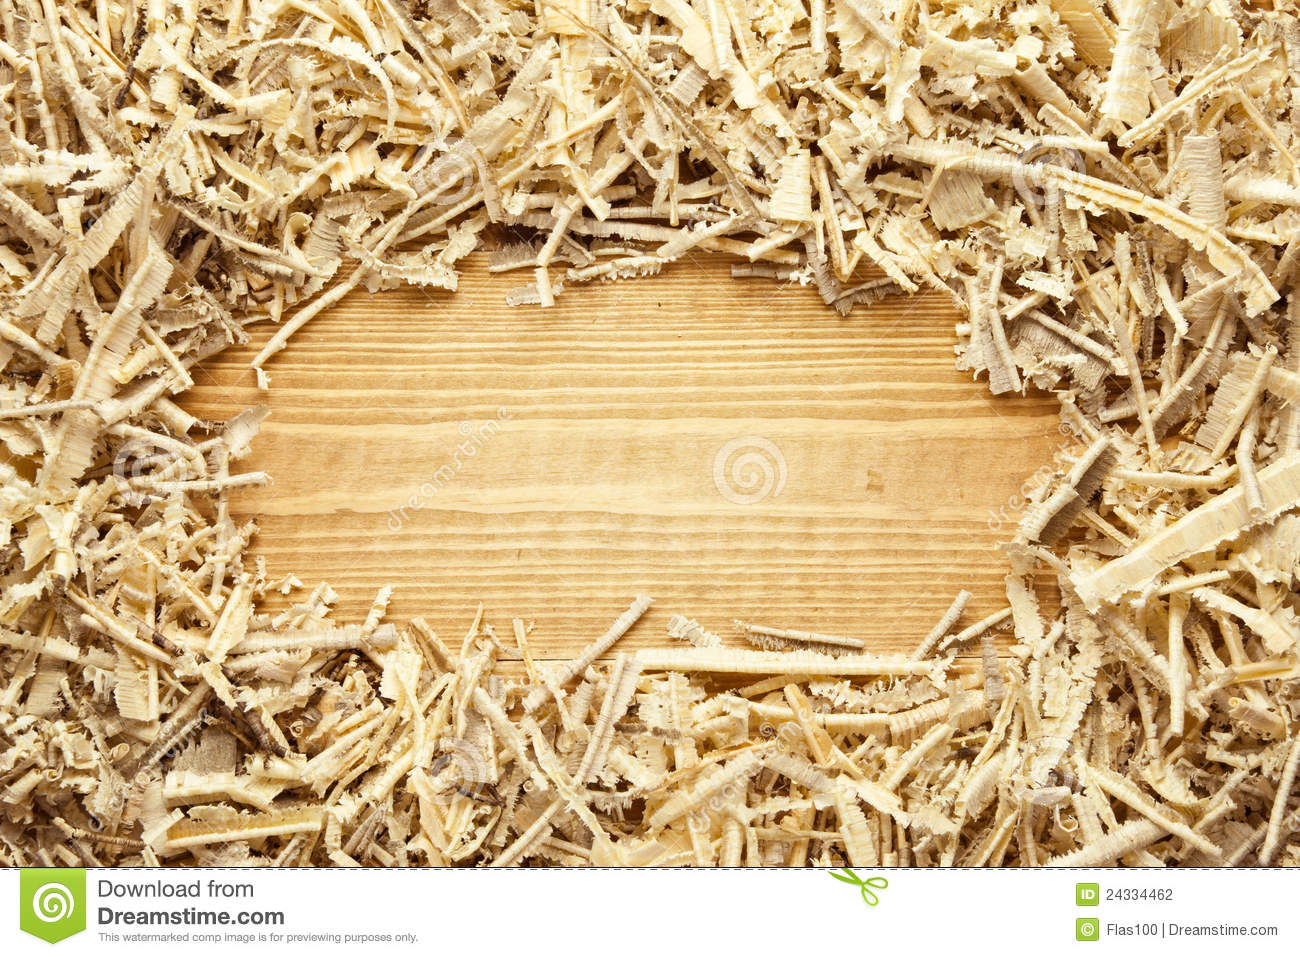 Wooden sawdust and shavings background stock photo image